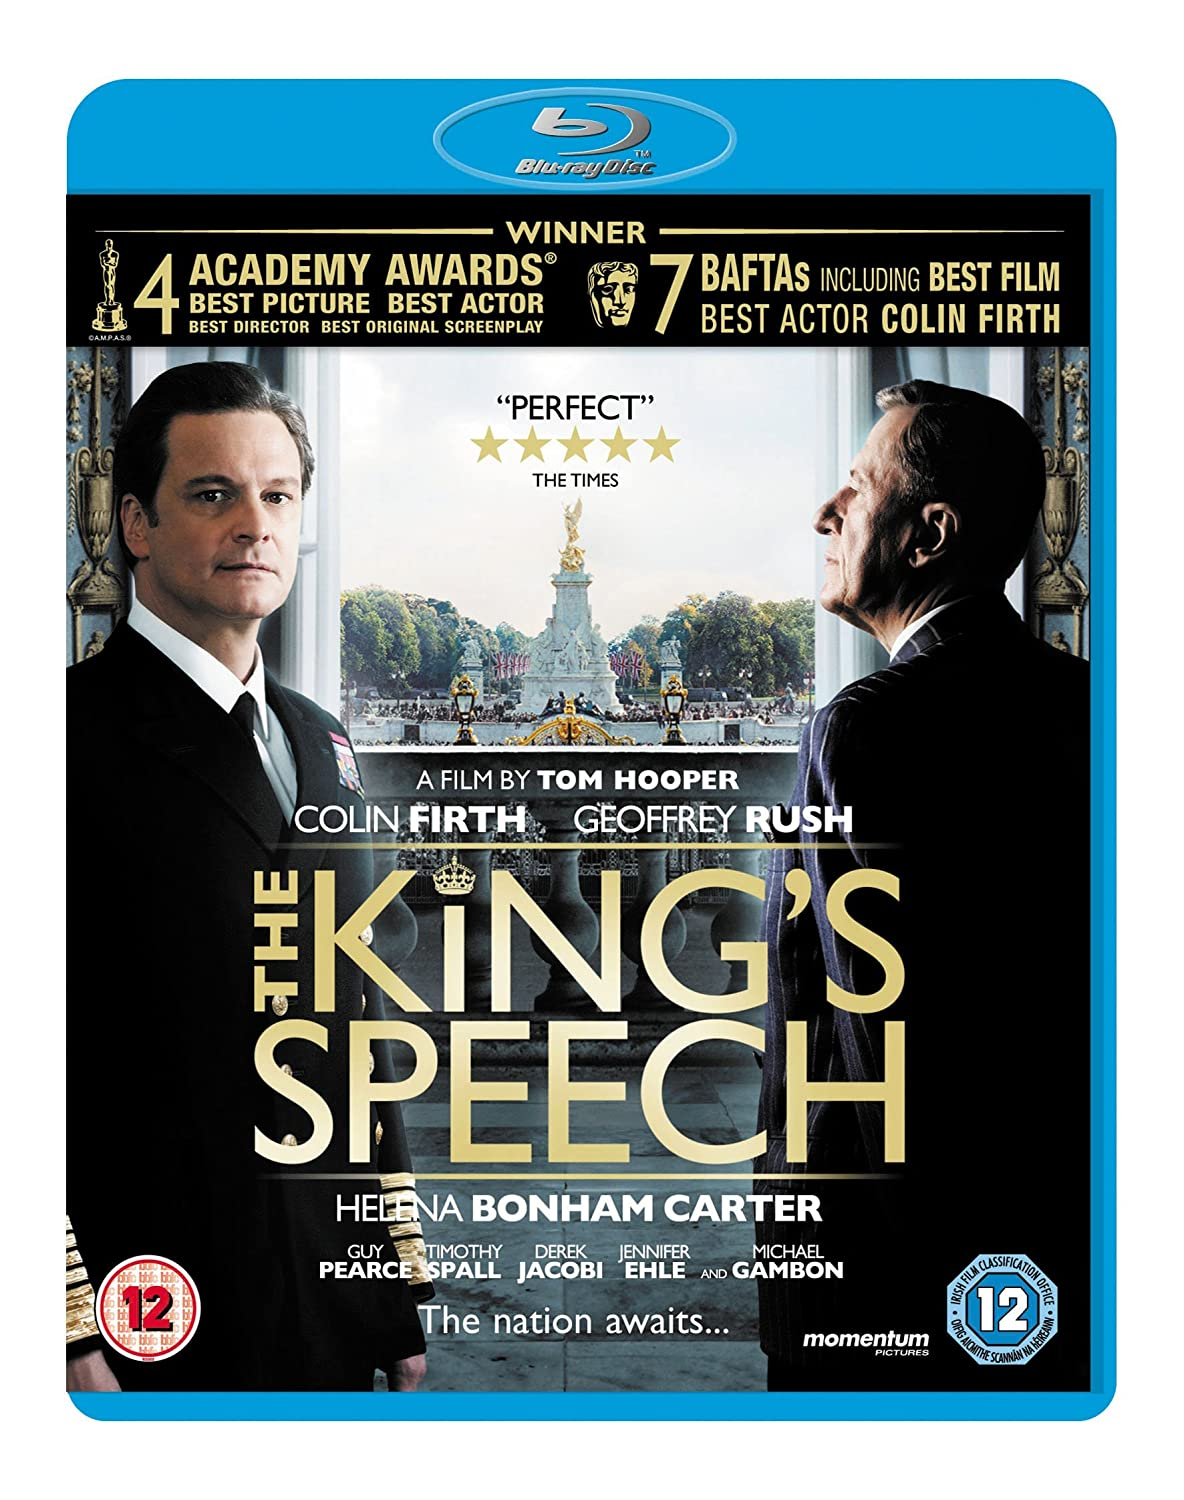 The kings speech blu ray 2010 amazon colin firth the kings speech blu ray 2010 amazon colin firth geoffrey rush michael gambon helena bonham carter guy pearce timothy spall derek jacobi geenschuldenfo Images